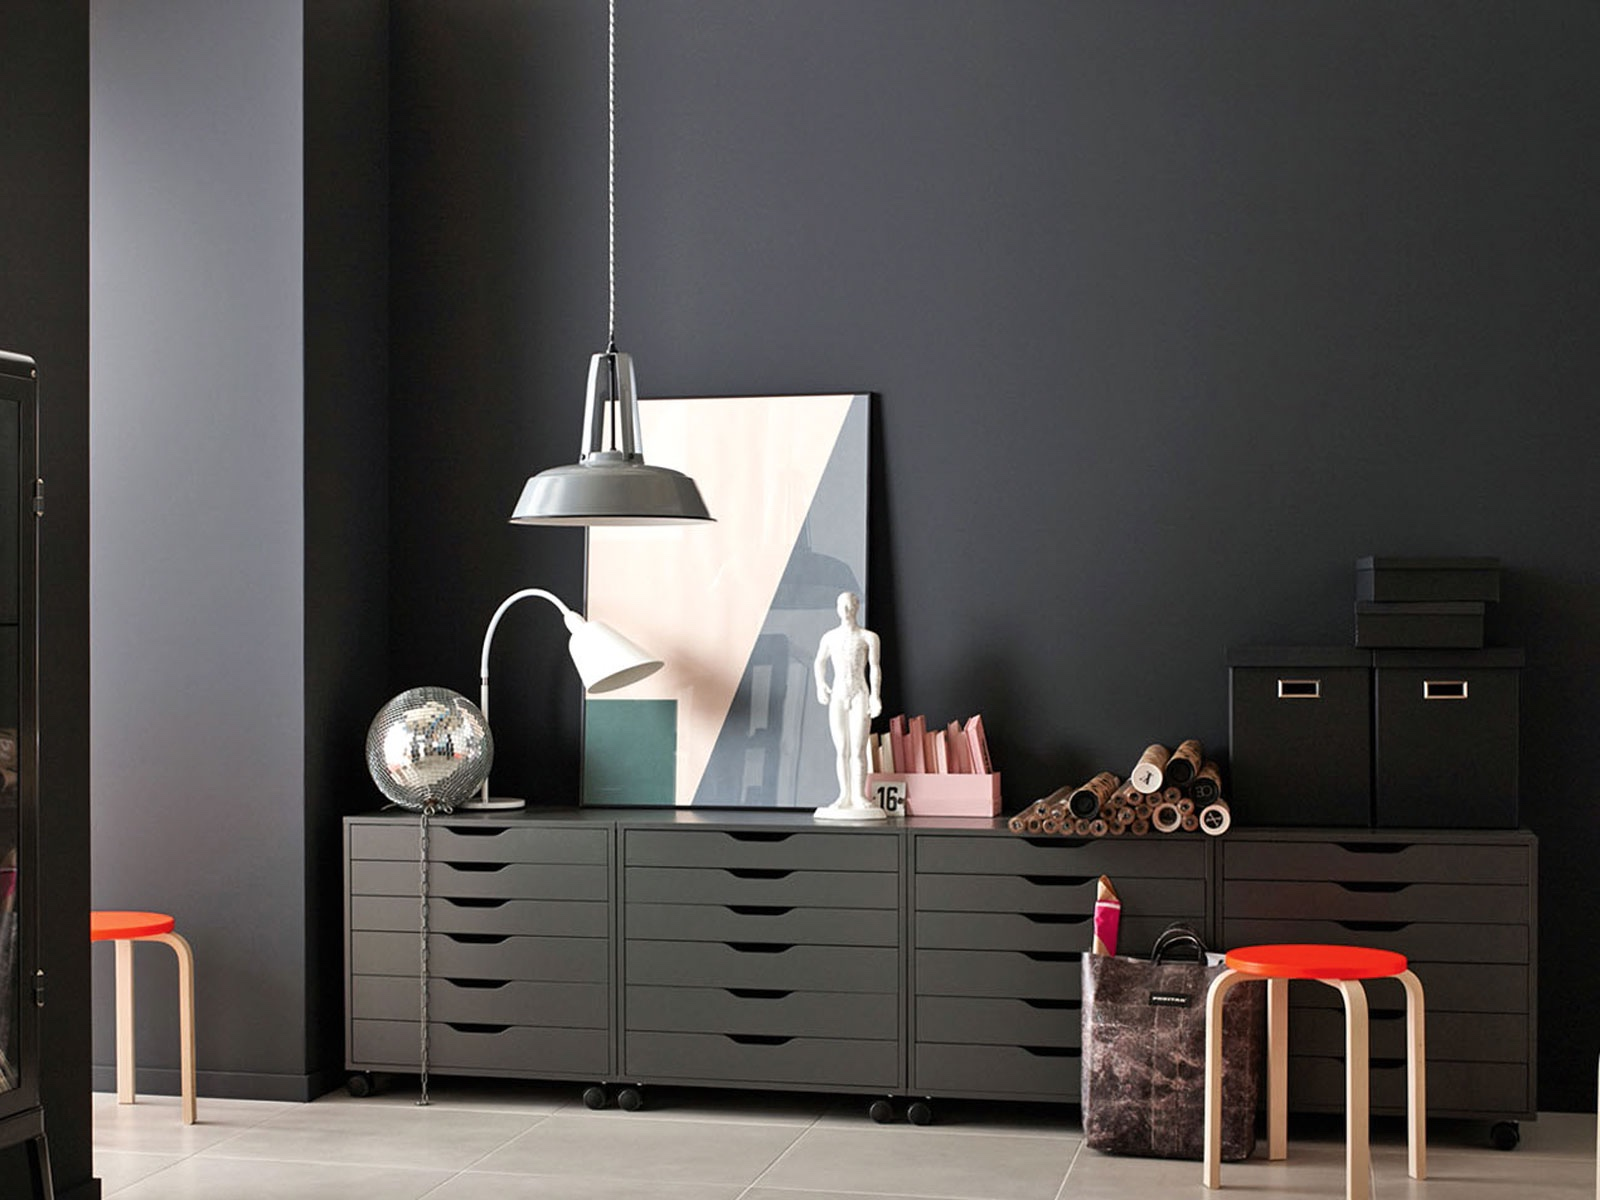 schner wohnen farbkarte fabulous schner wohnen profidur buntlack reinwei ml with schner wohnen. Black Bedroom Furniture Sets. Home Design Ideas